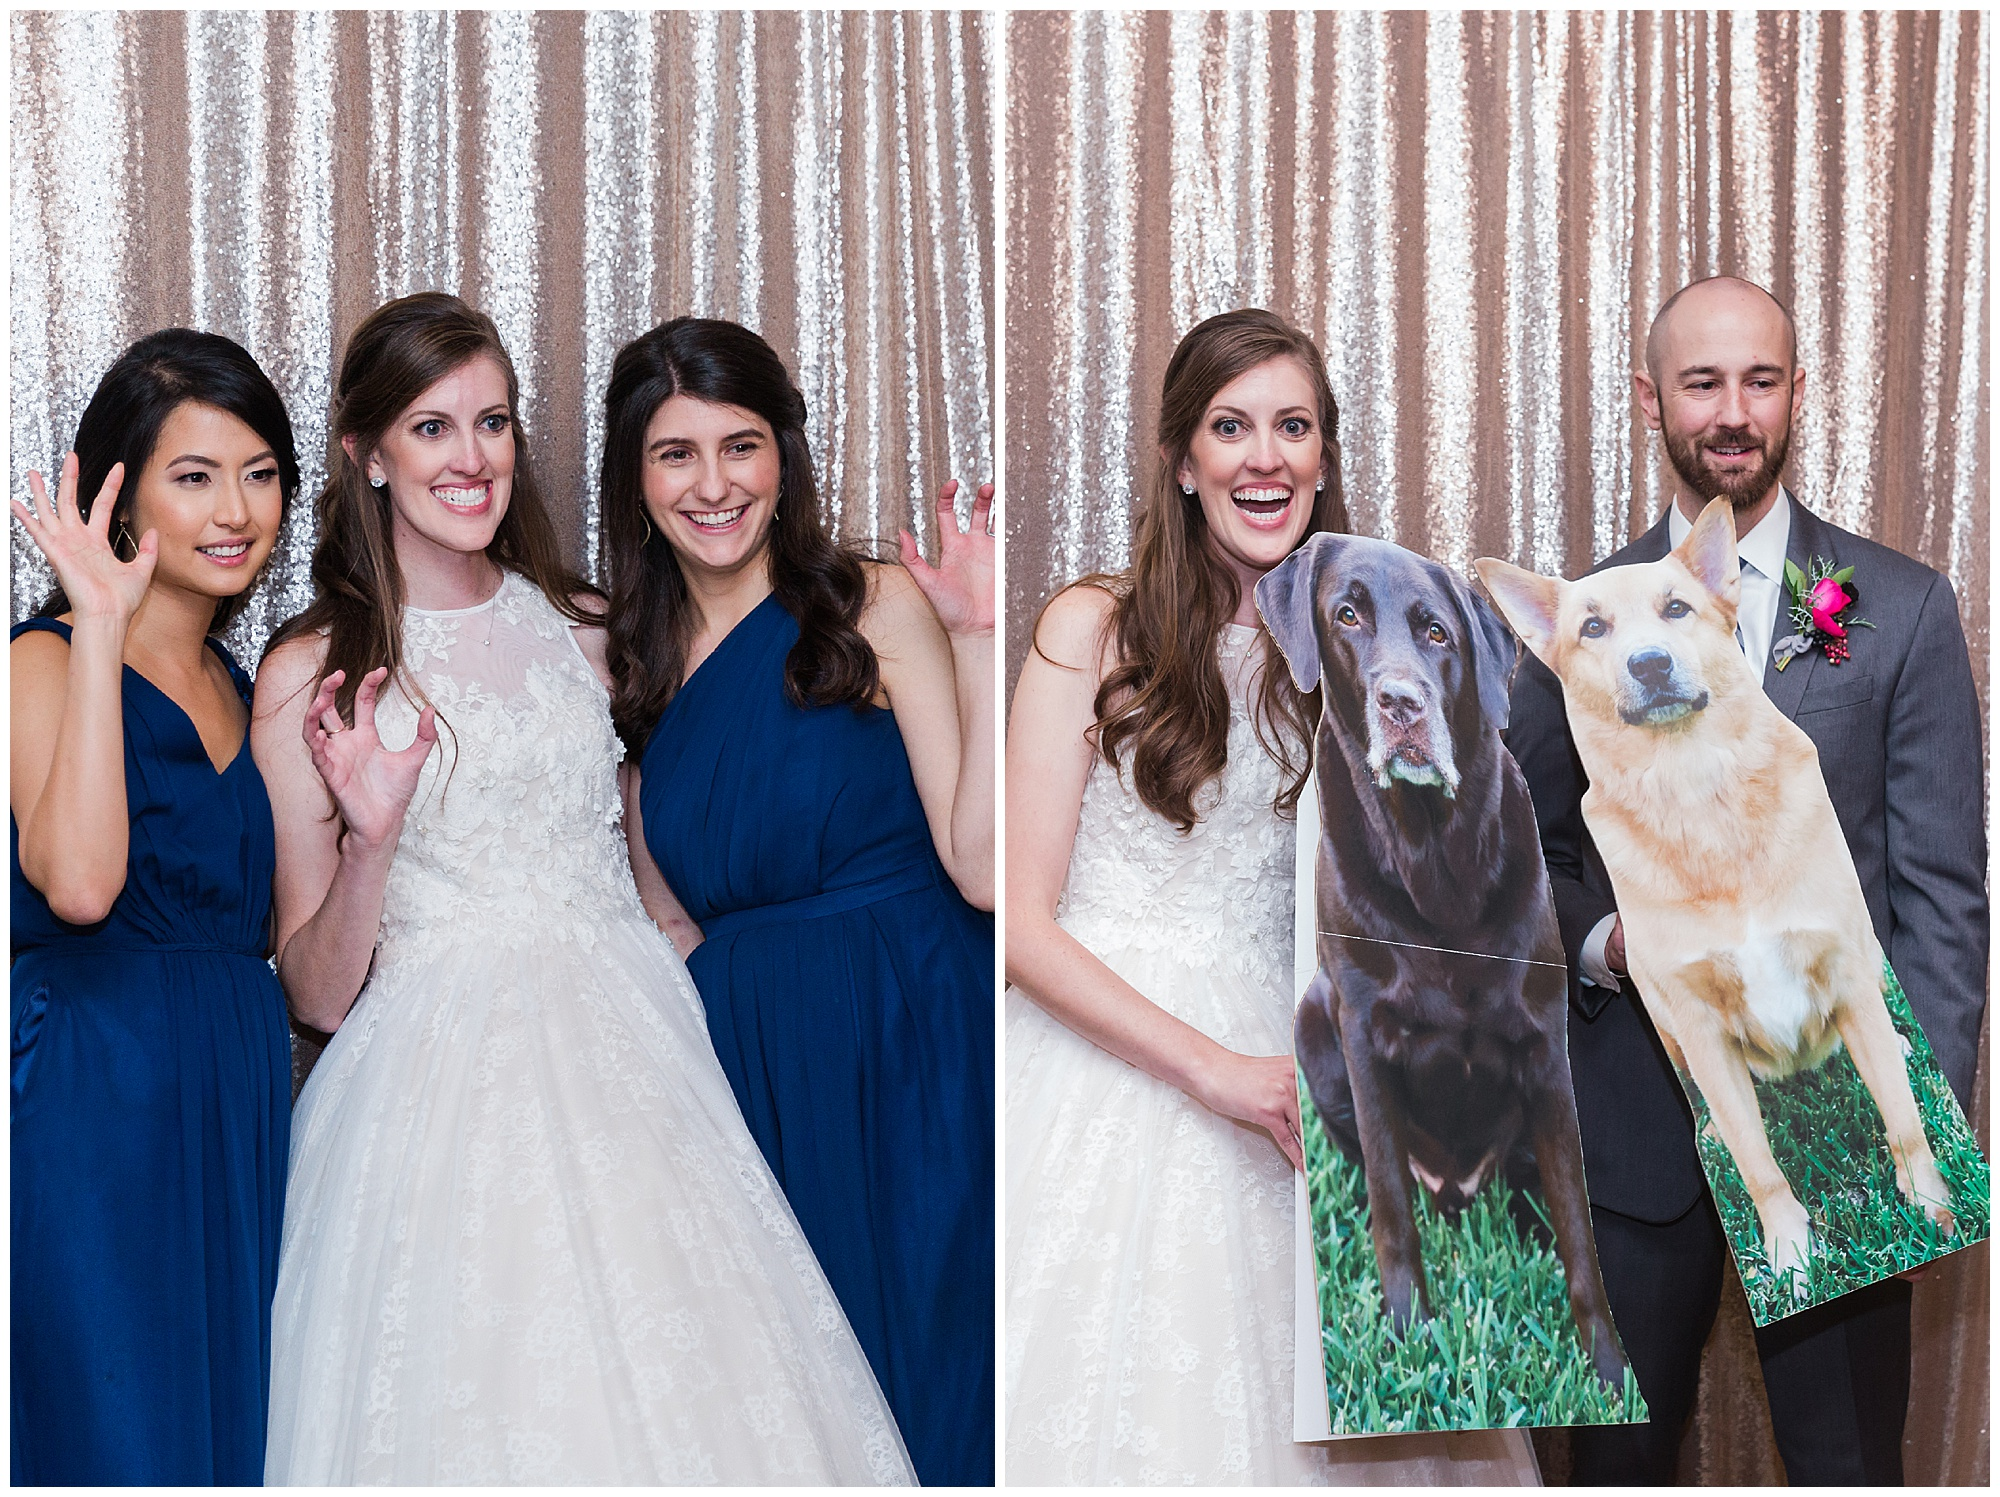 austin wedding photo booth_0020.jpg